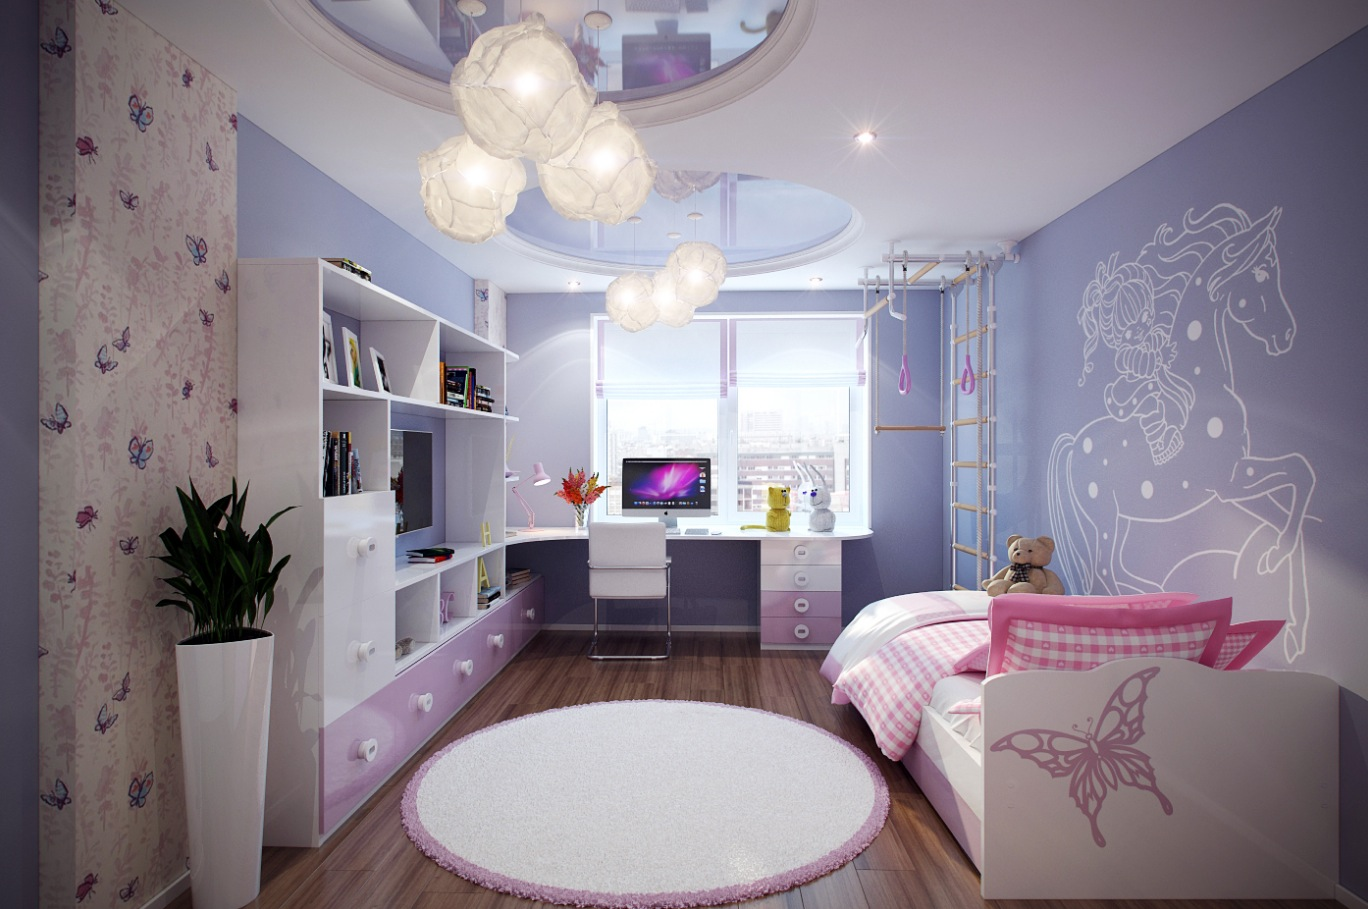 Casting color over kids rooms for Children bedroom designs girls